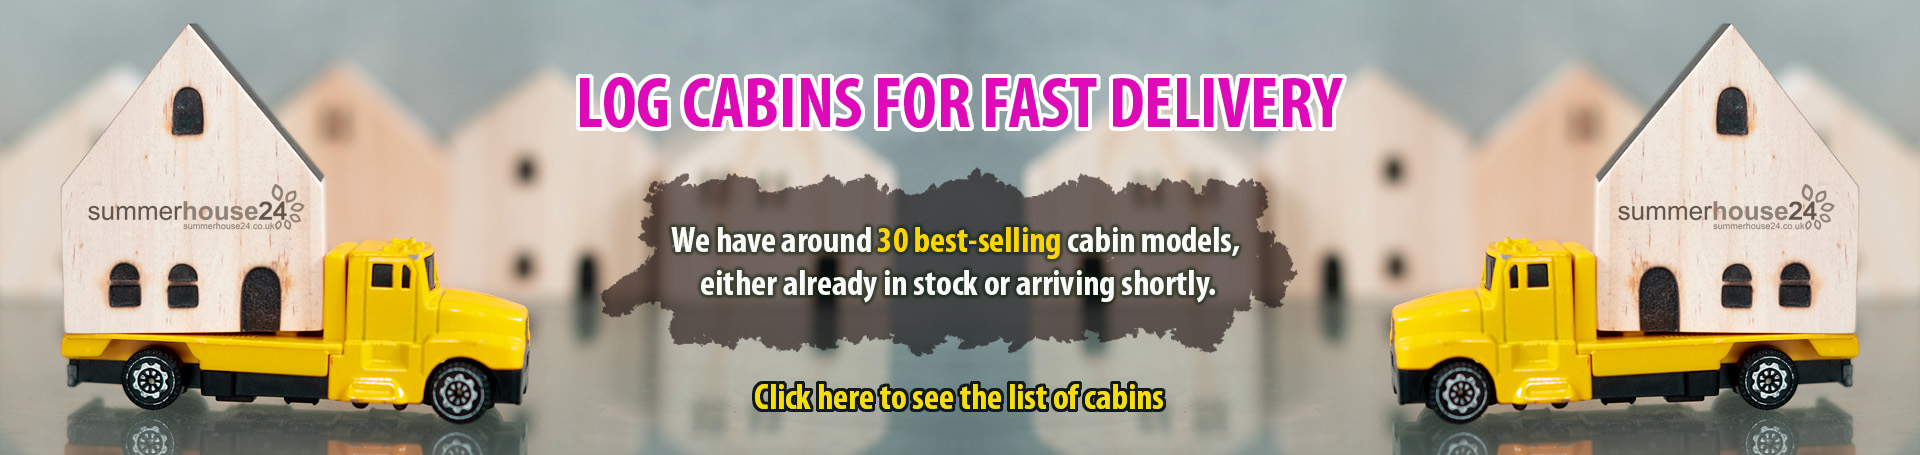 Garden log cabins for fast delivery